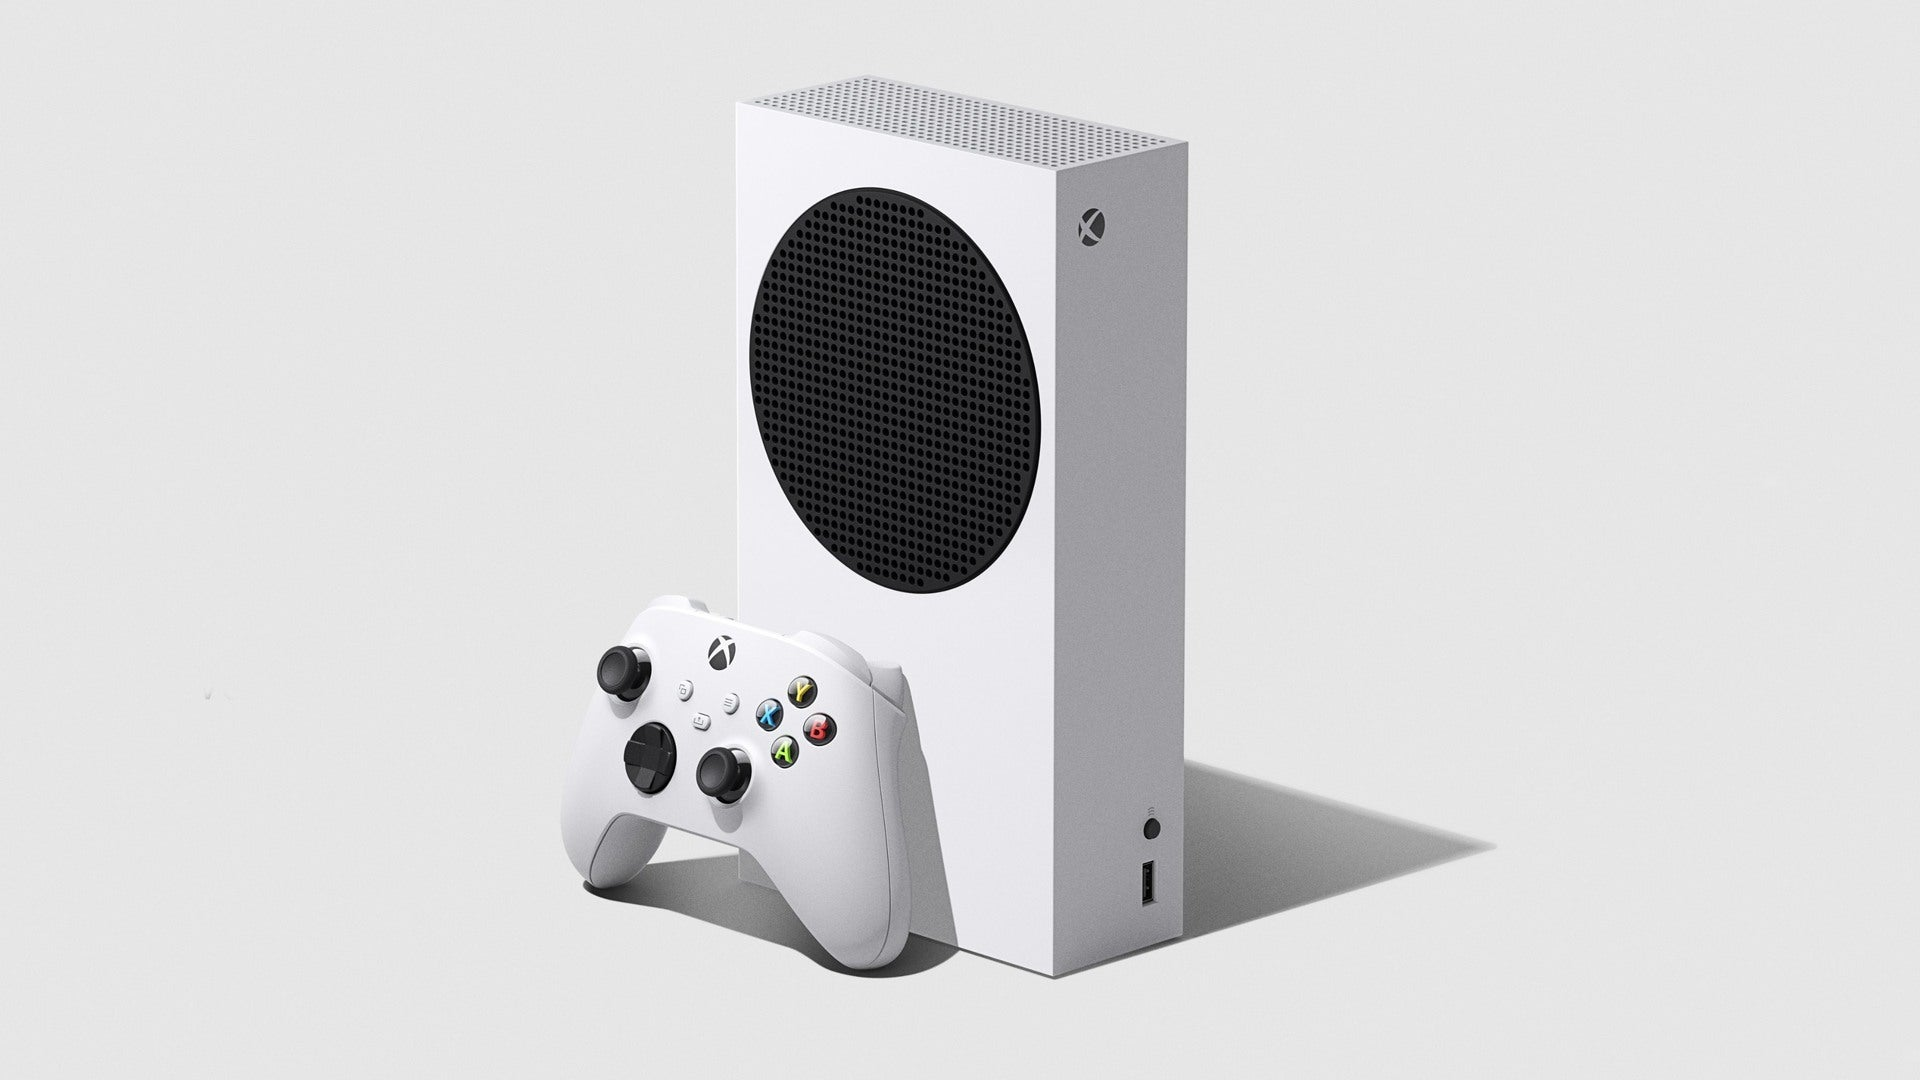 Xbox Series S - release date, price, features, games, specs, and more